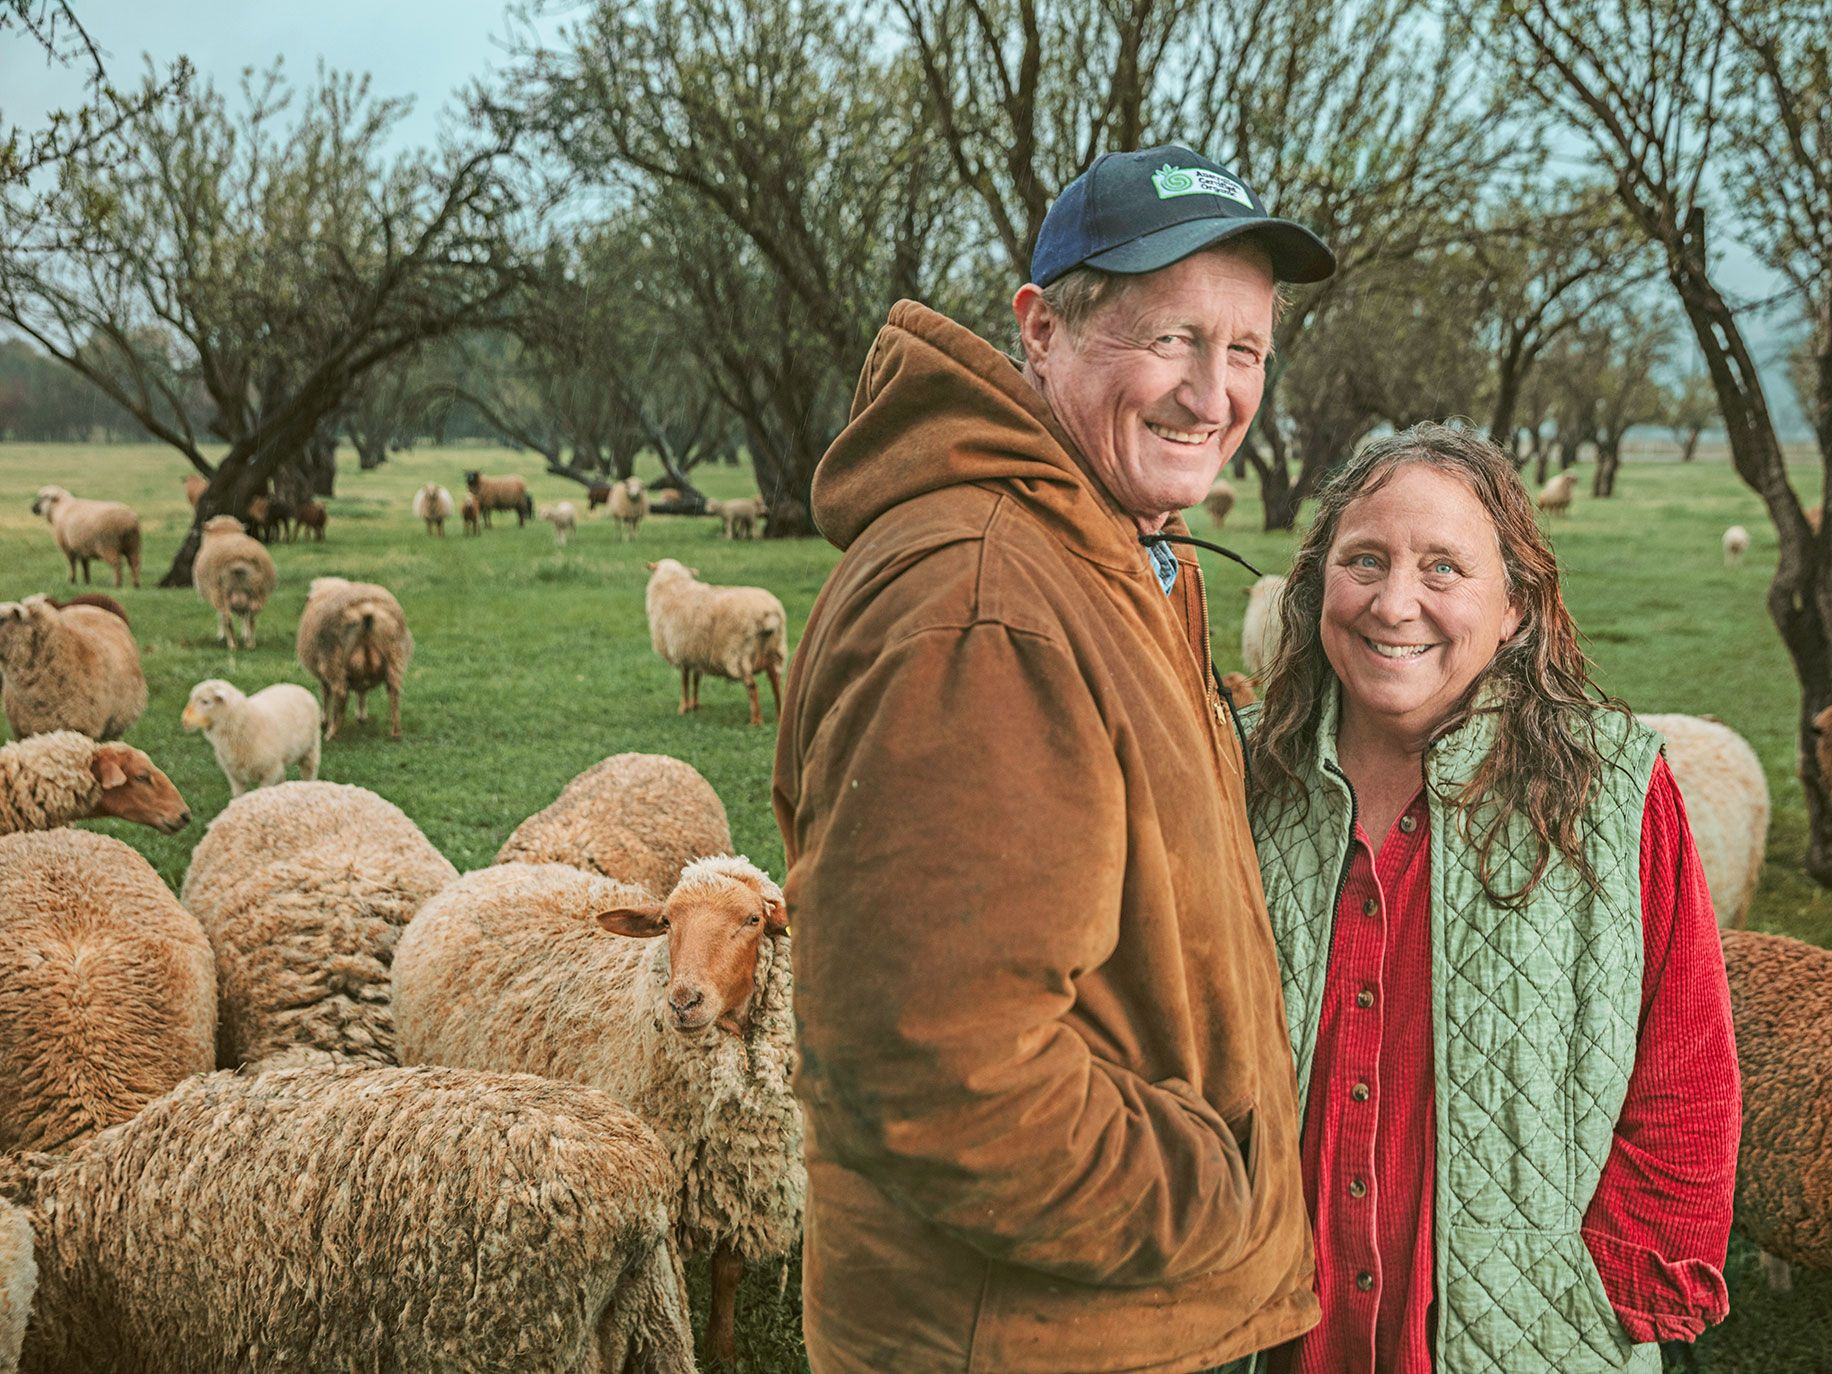 Paul Muller and Dru Rivers of Full Belly Farm, which recently transformed into a corporation to create a structure for younger family members to eventually take over.